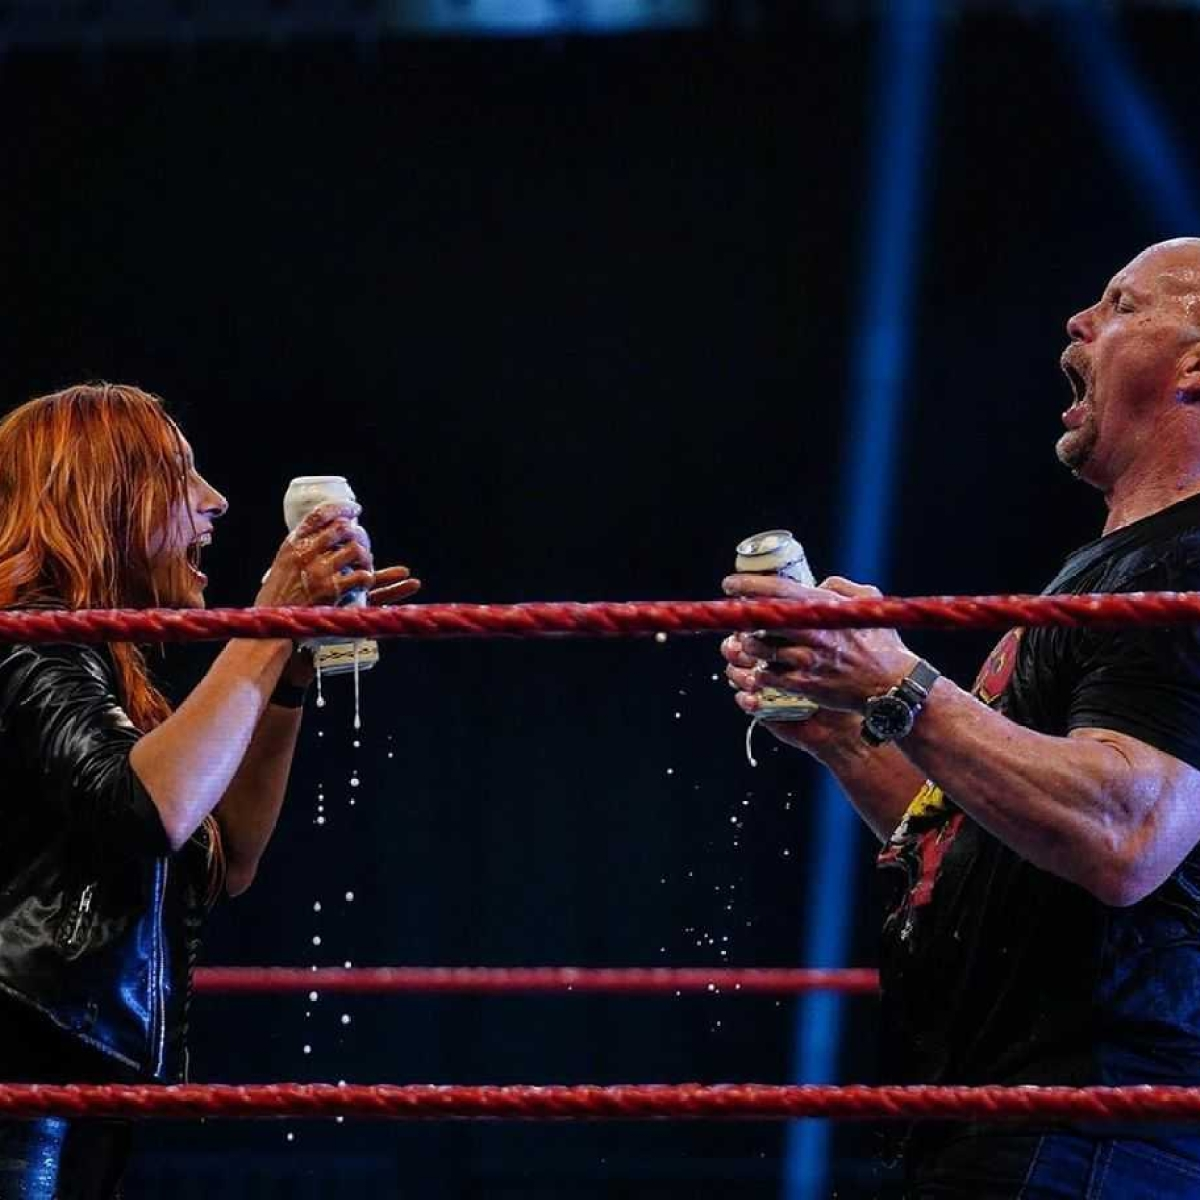 Steve Austin marks '3:16 Day' with Stone Cold Stunners but there's no one to watch